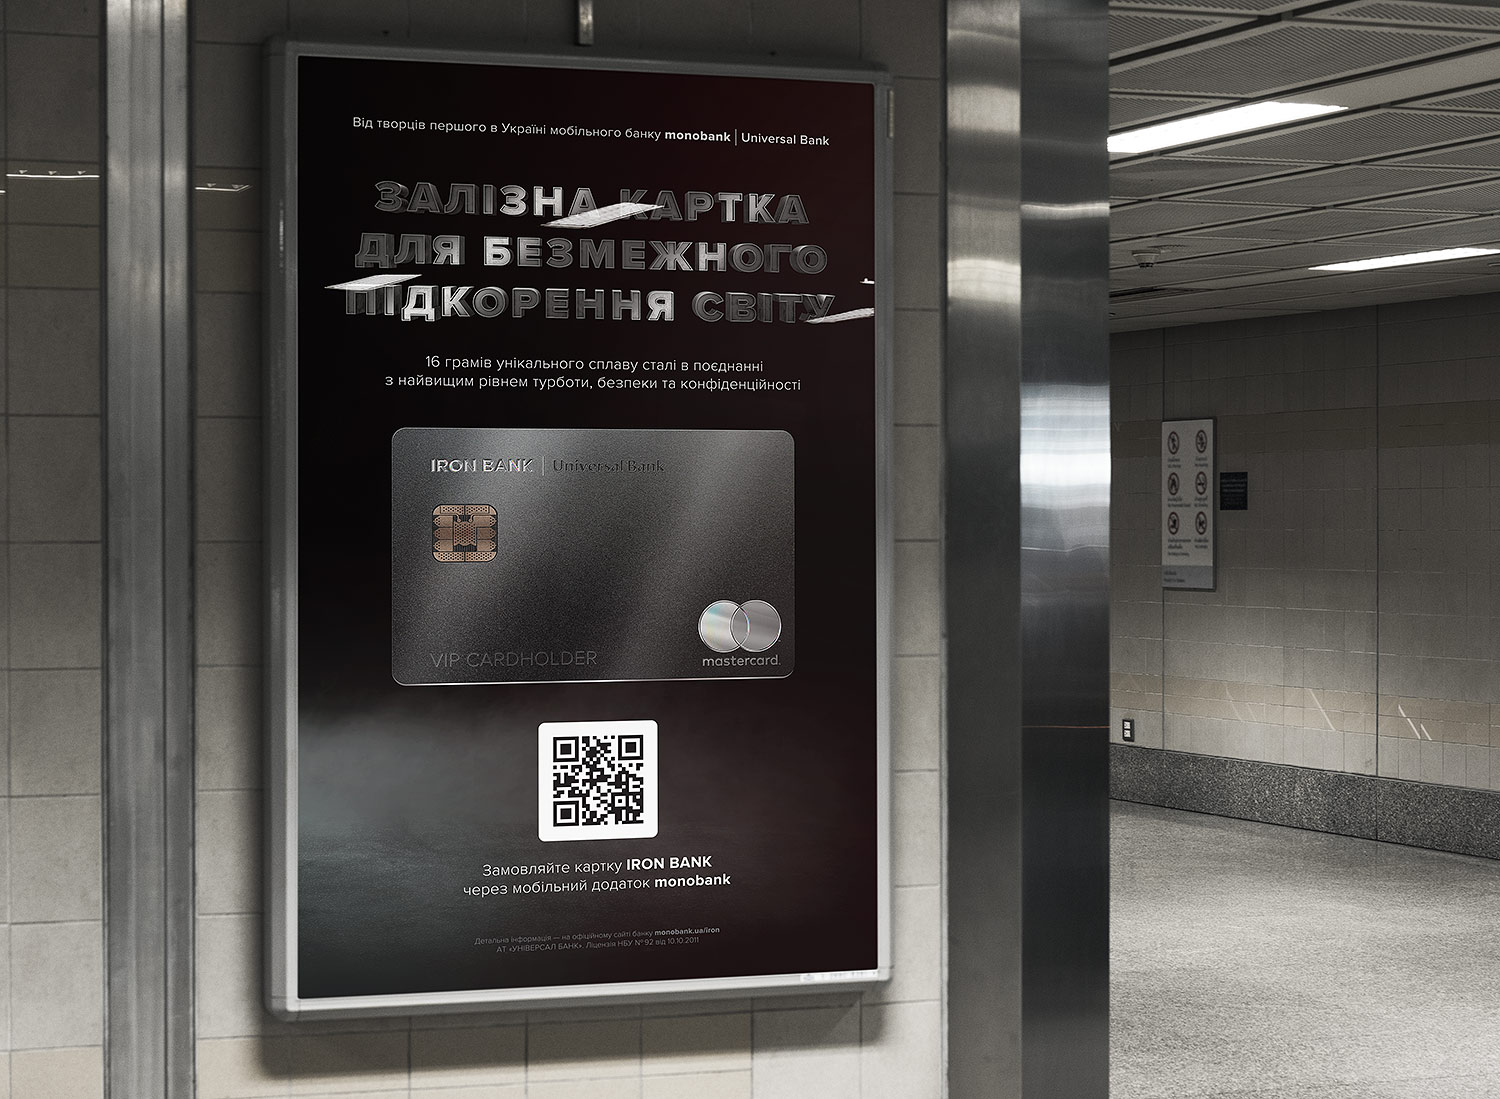 Order an Iron Bank metal card via the monobank mobile application. Advertising lightbox.